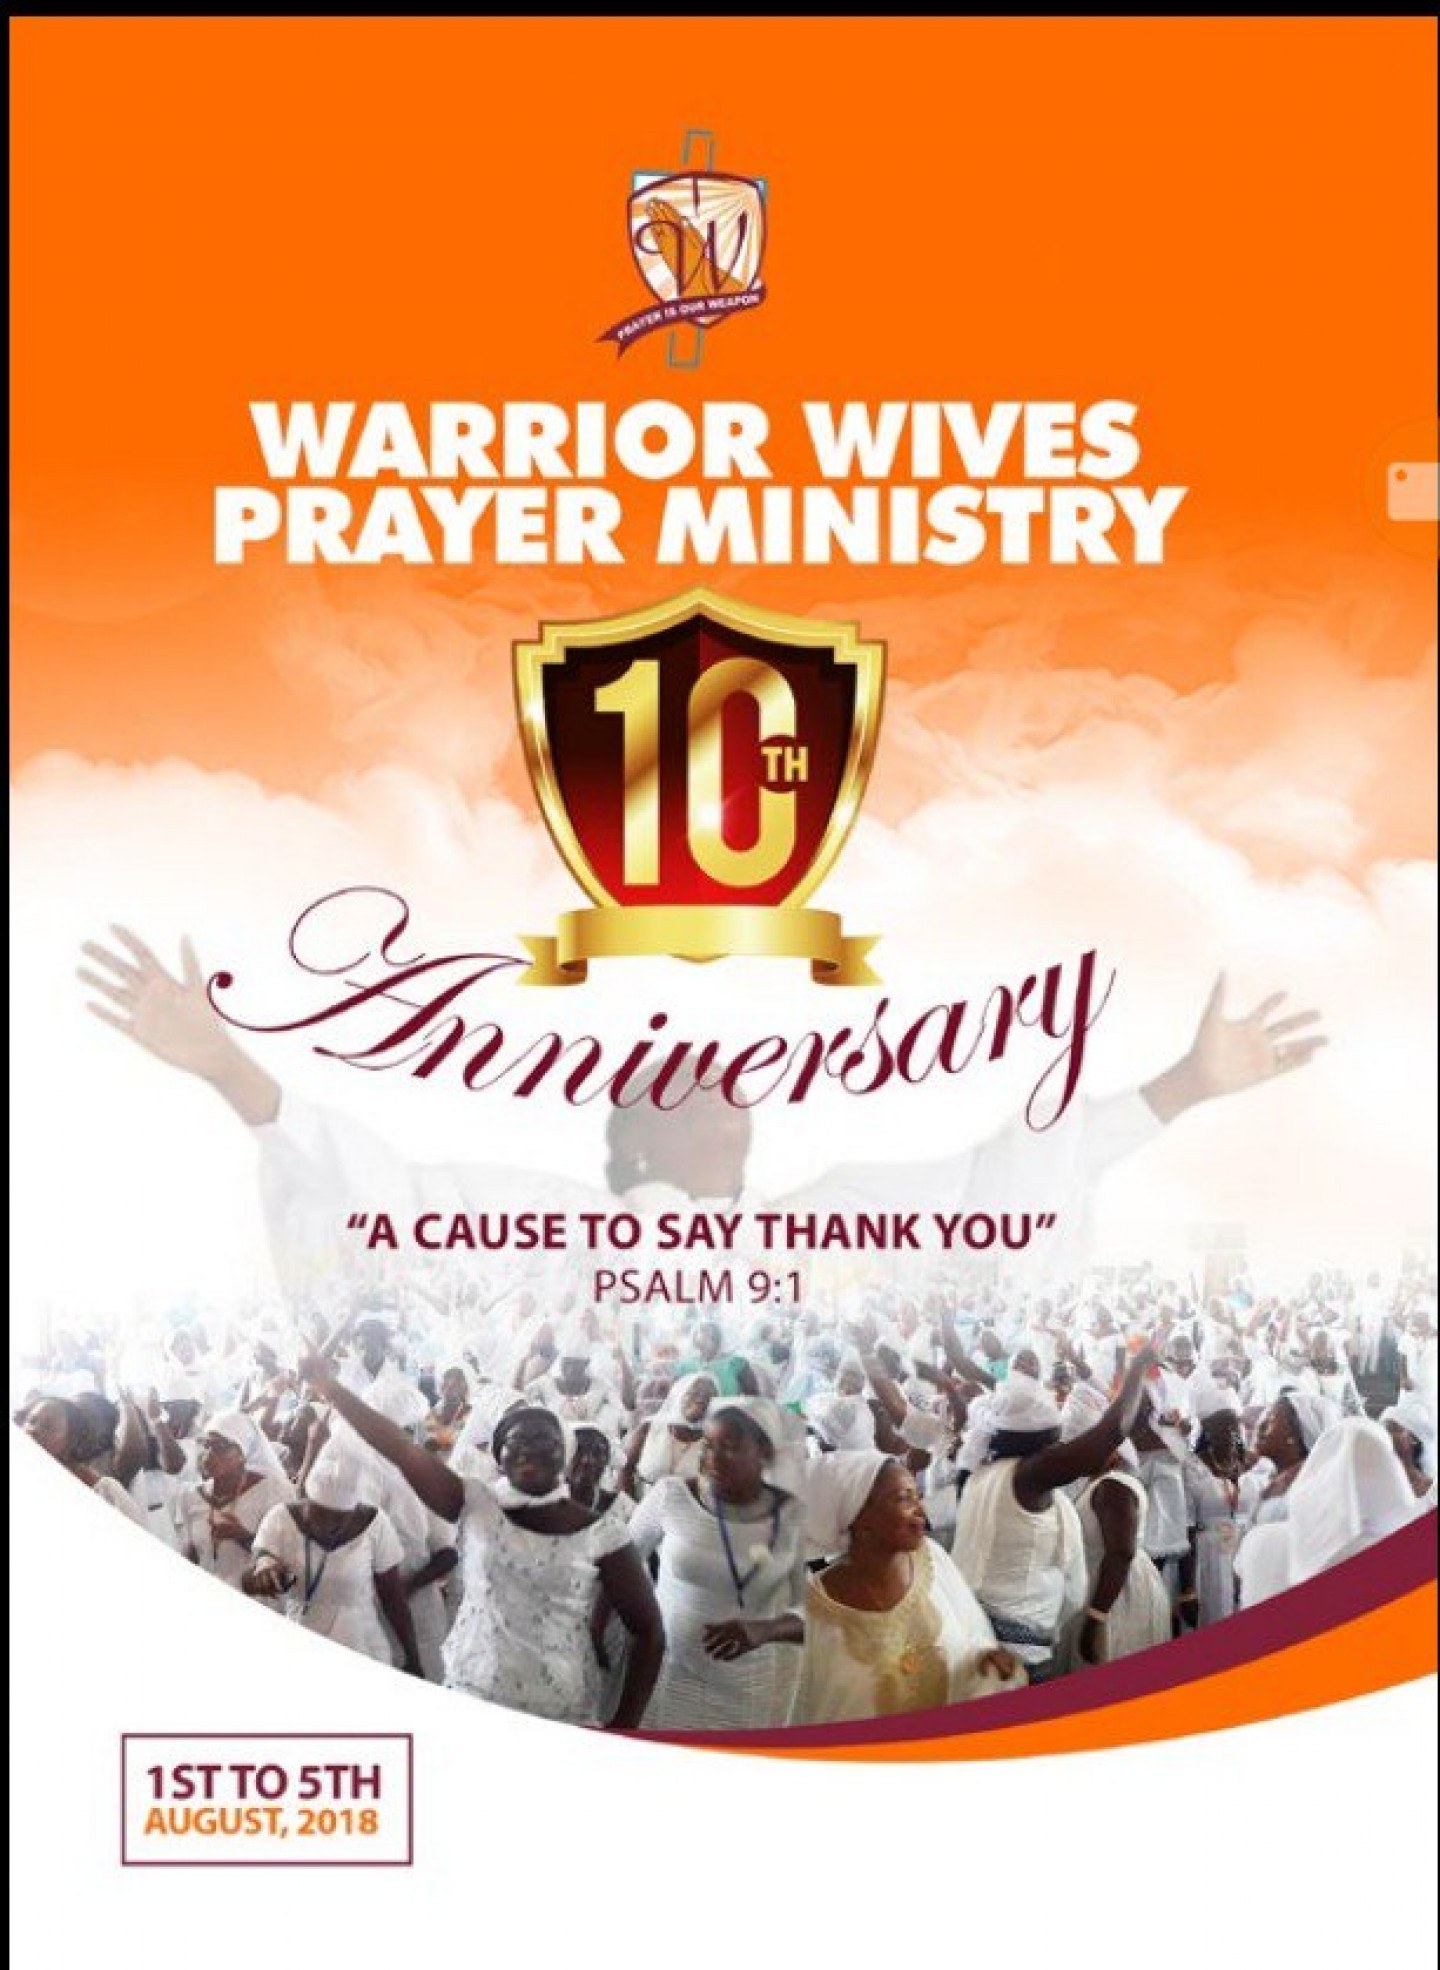 Warrior Wives Prayer Ministry